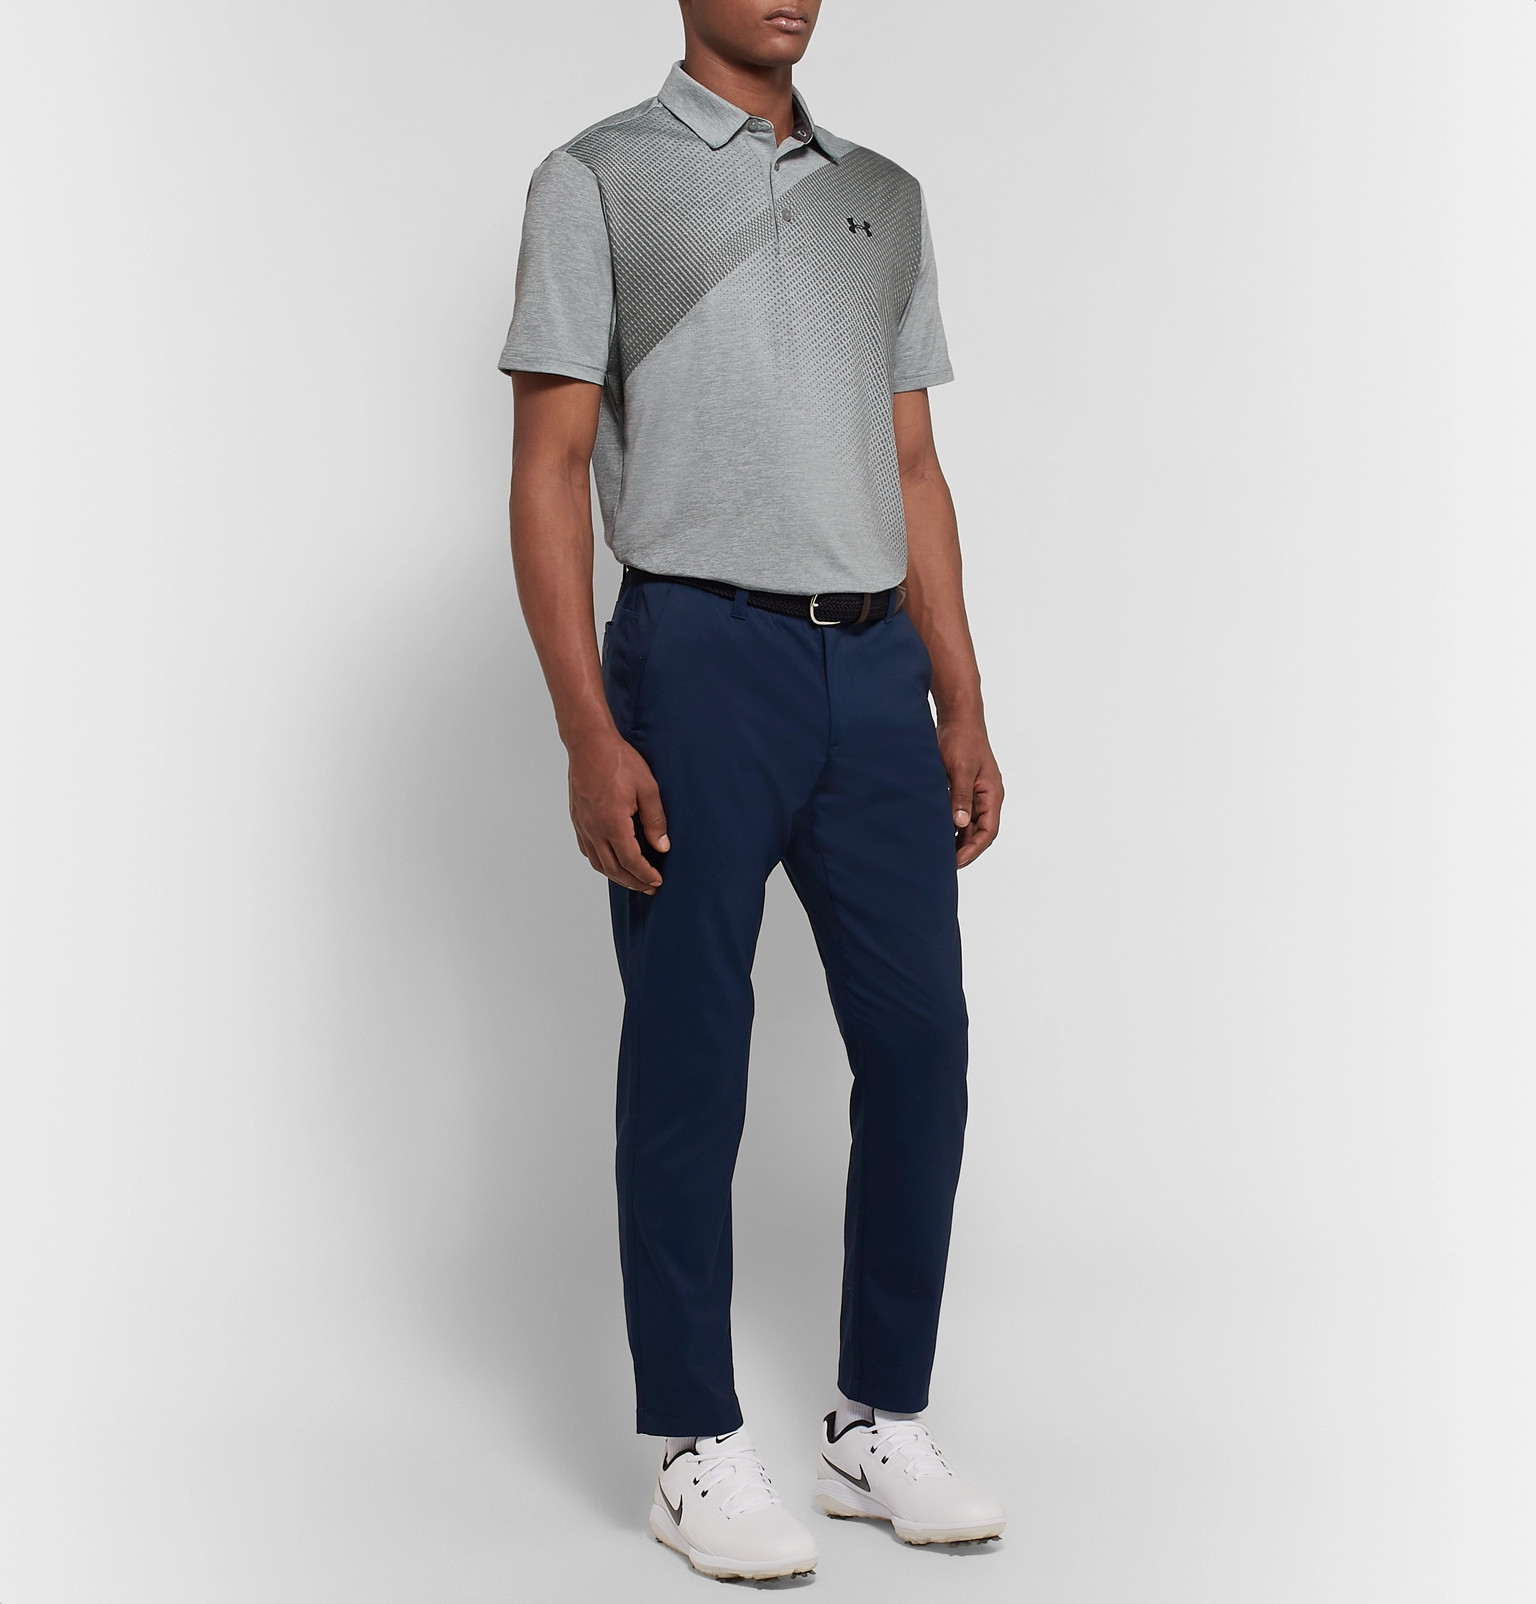 bed98534762ec1 Under Armour - Playoff 2.0 HeatGear Golf Polo Shirt